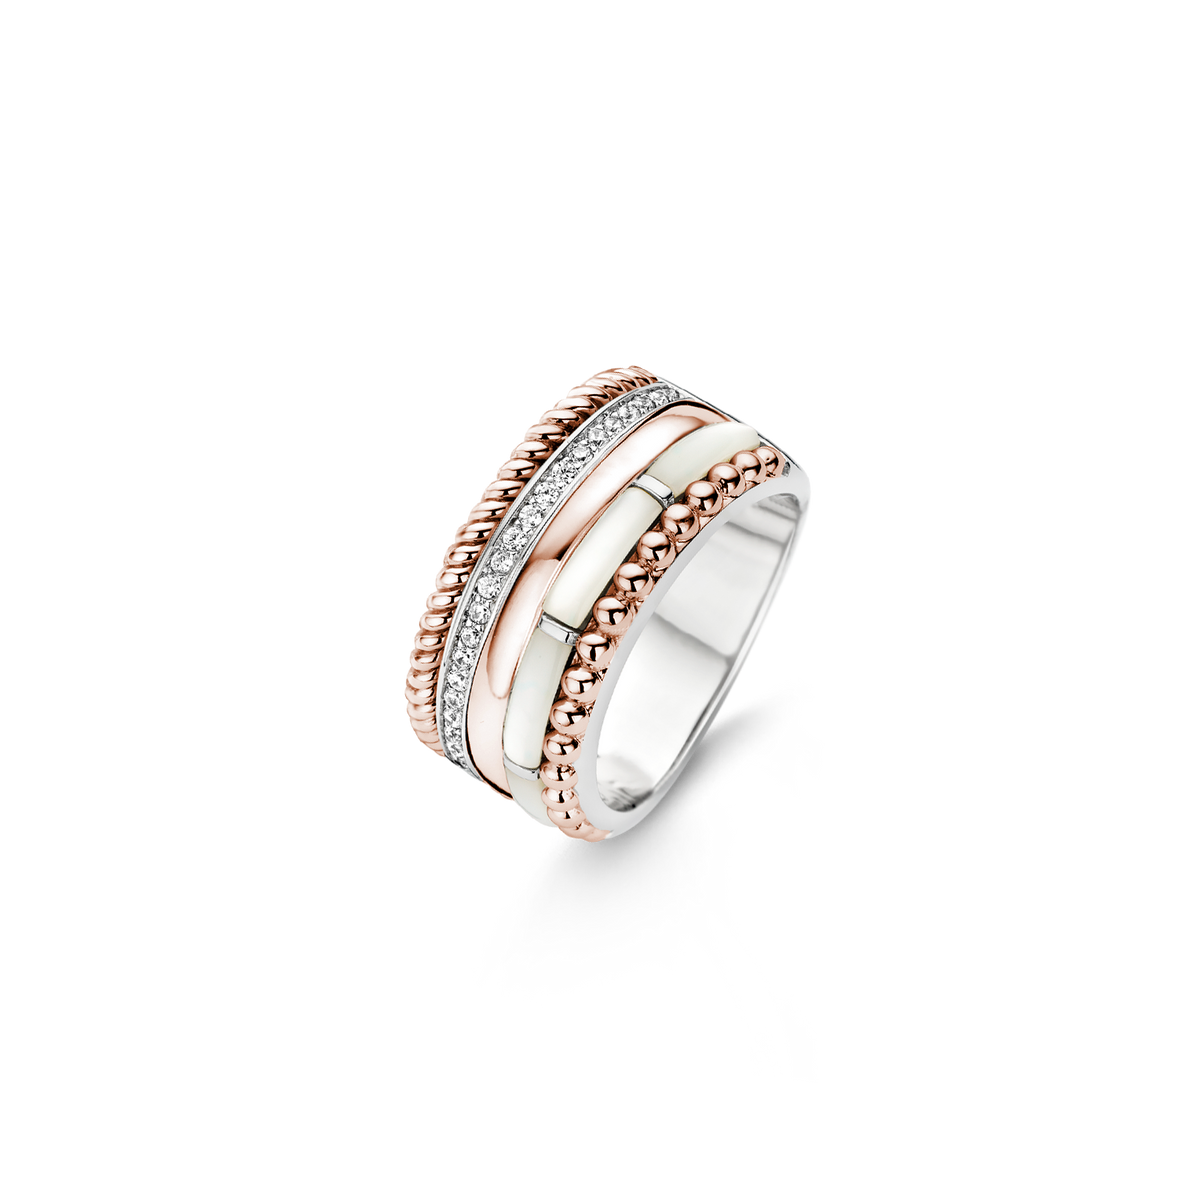 TI SENTO - Milano Bague 12038MR